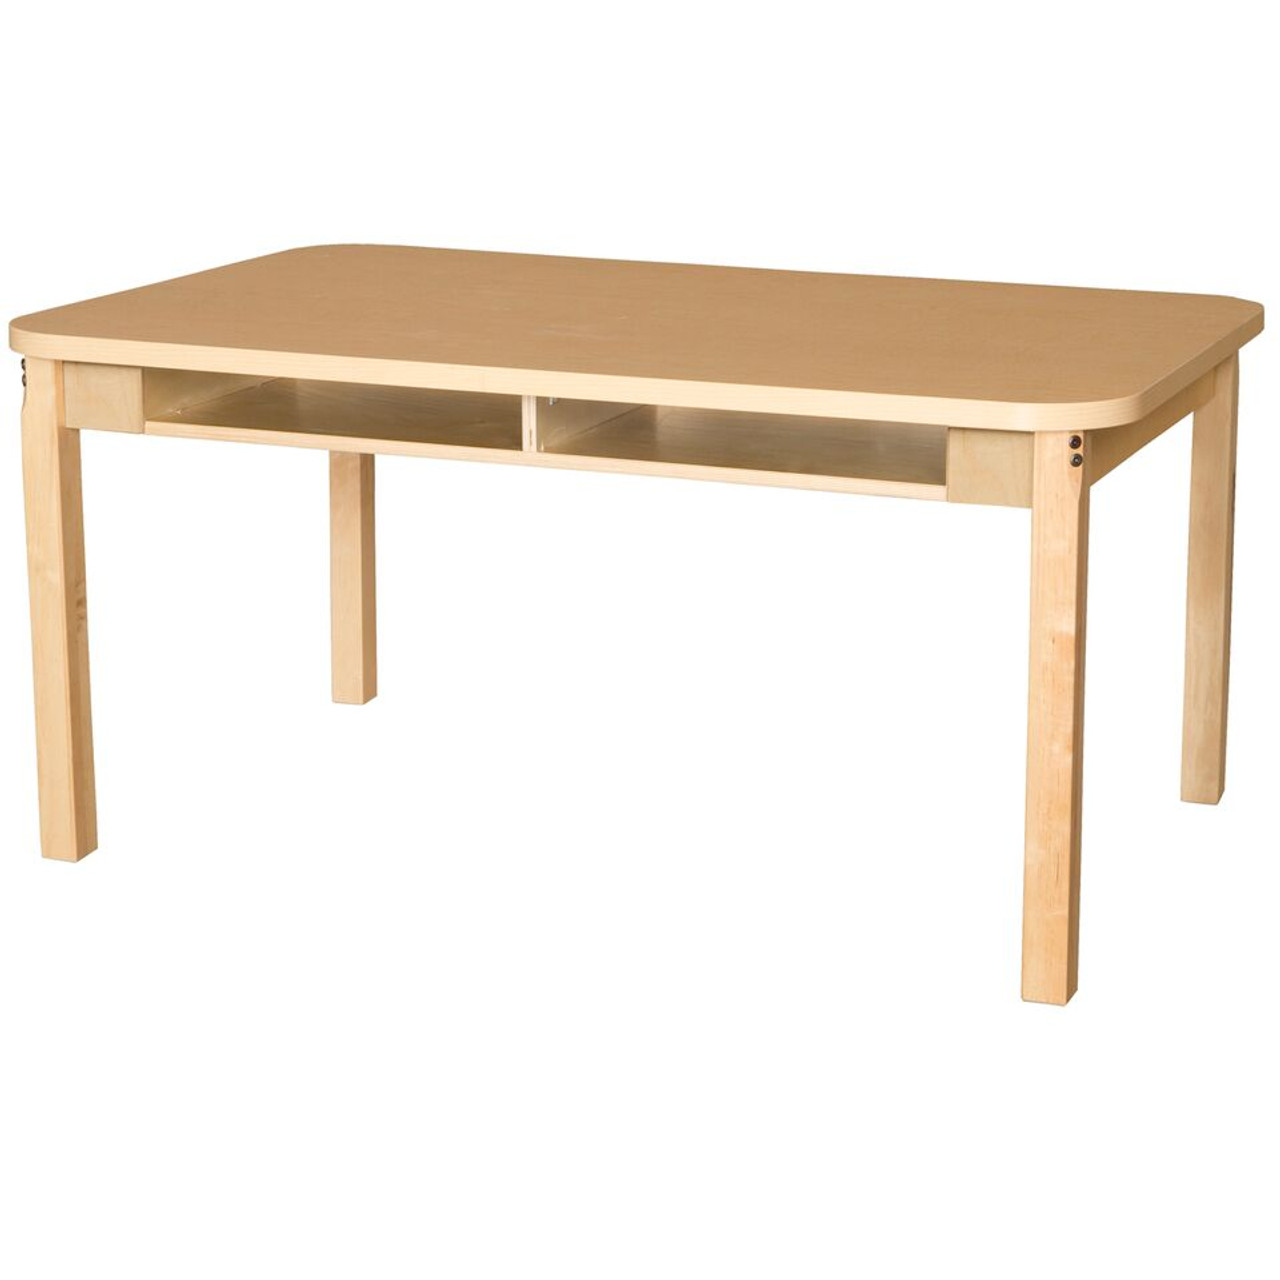 Outstanding Wood Designs Wdhpl3648Dsk24 Four Seater High Pressure Laminate Desk With Hardwood 24 Inch Height Caraccident5 Cool Chair Designs And Ideas Caraccident5Info